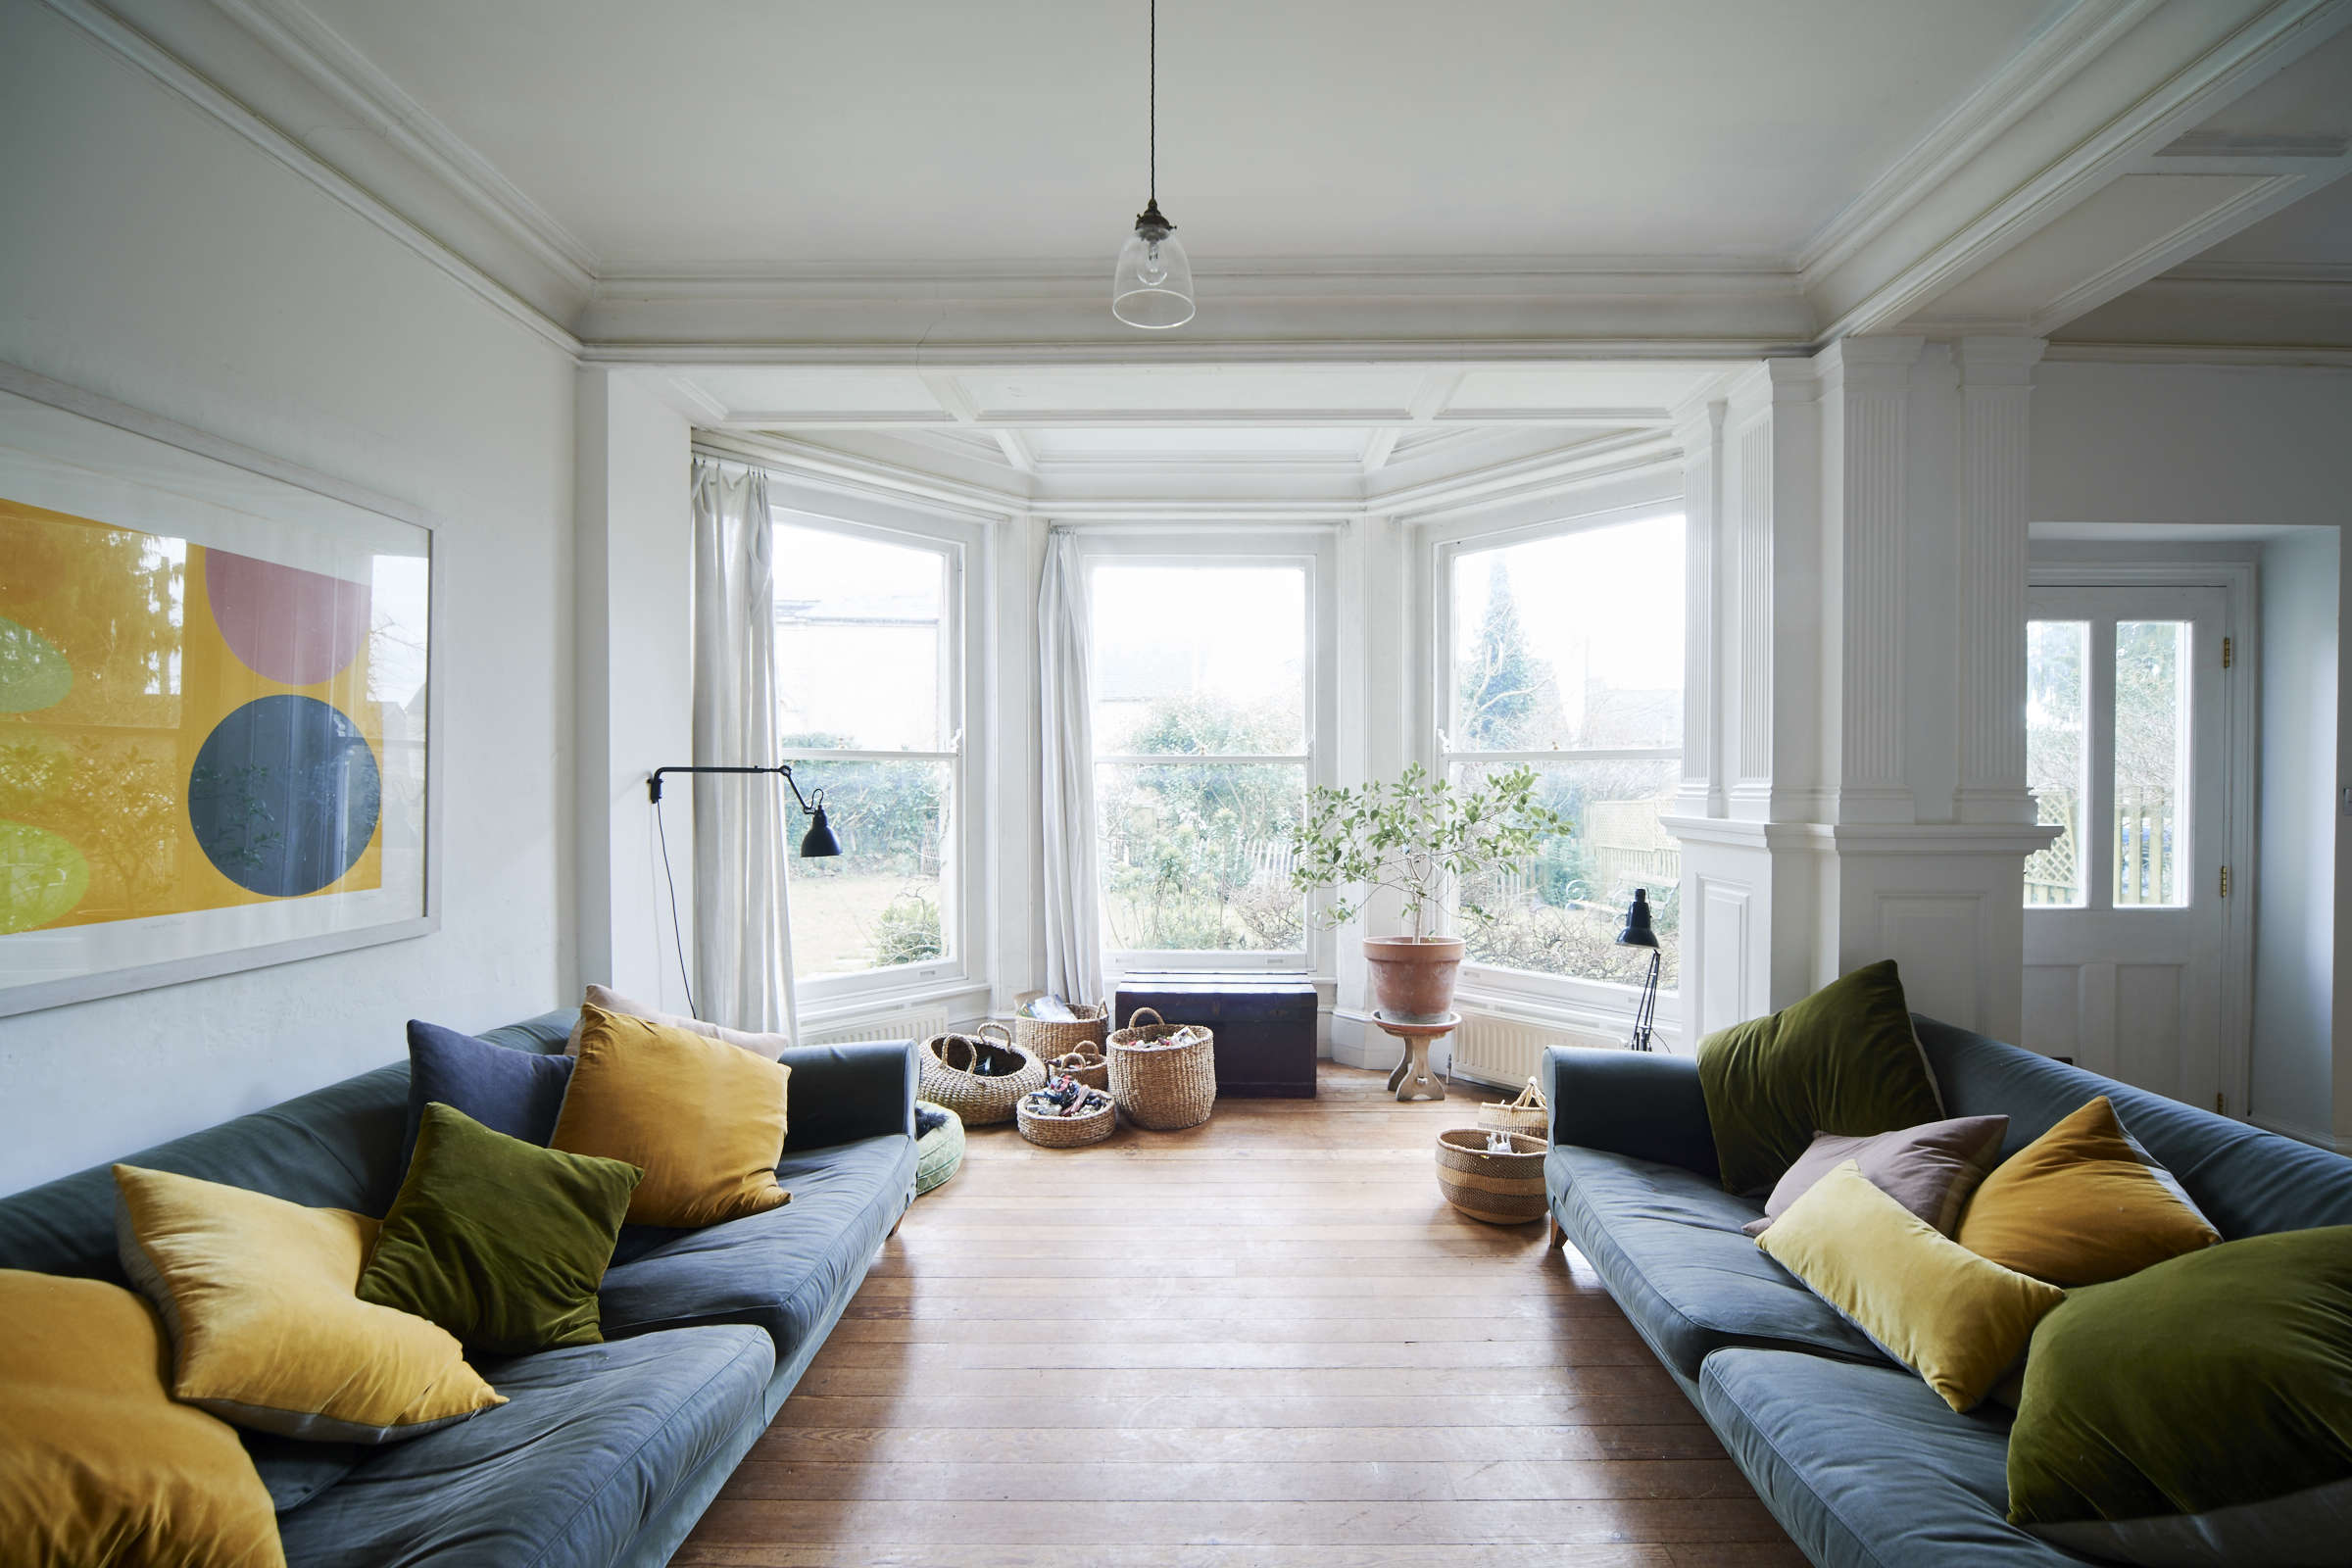 Steal This Look A Country House with Selective Color niki turner stroud remodelista 11